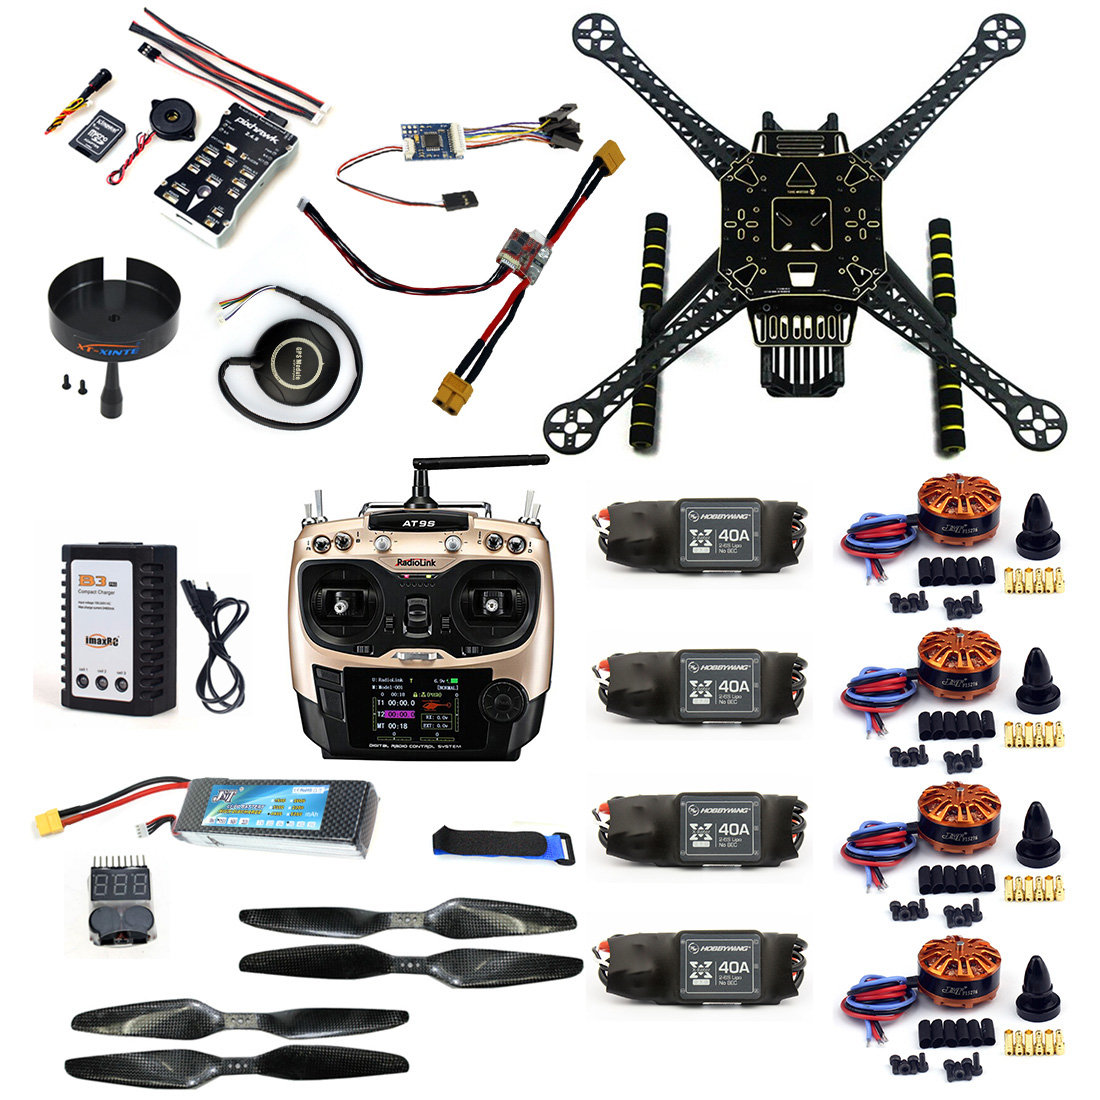 F19457-C DIY RC Drone Full Kit S600 Frame PIX 2.4.8 Flight Control 40A ESC 700KV Motor AT9S TX with Battery Charger XT60 Plug zd850 full carbon fiber 850mm hexa rotor frame pix pixhawk 2 4 8 flight comtrol 5010 360kv motor 40a brushless opto esc set